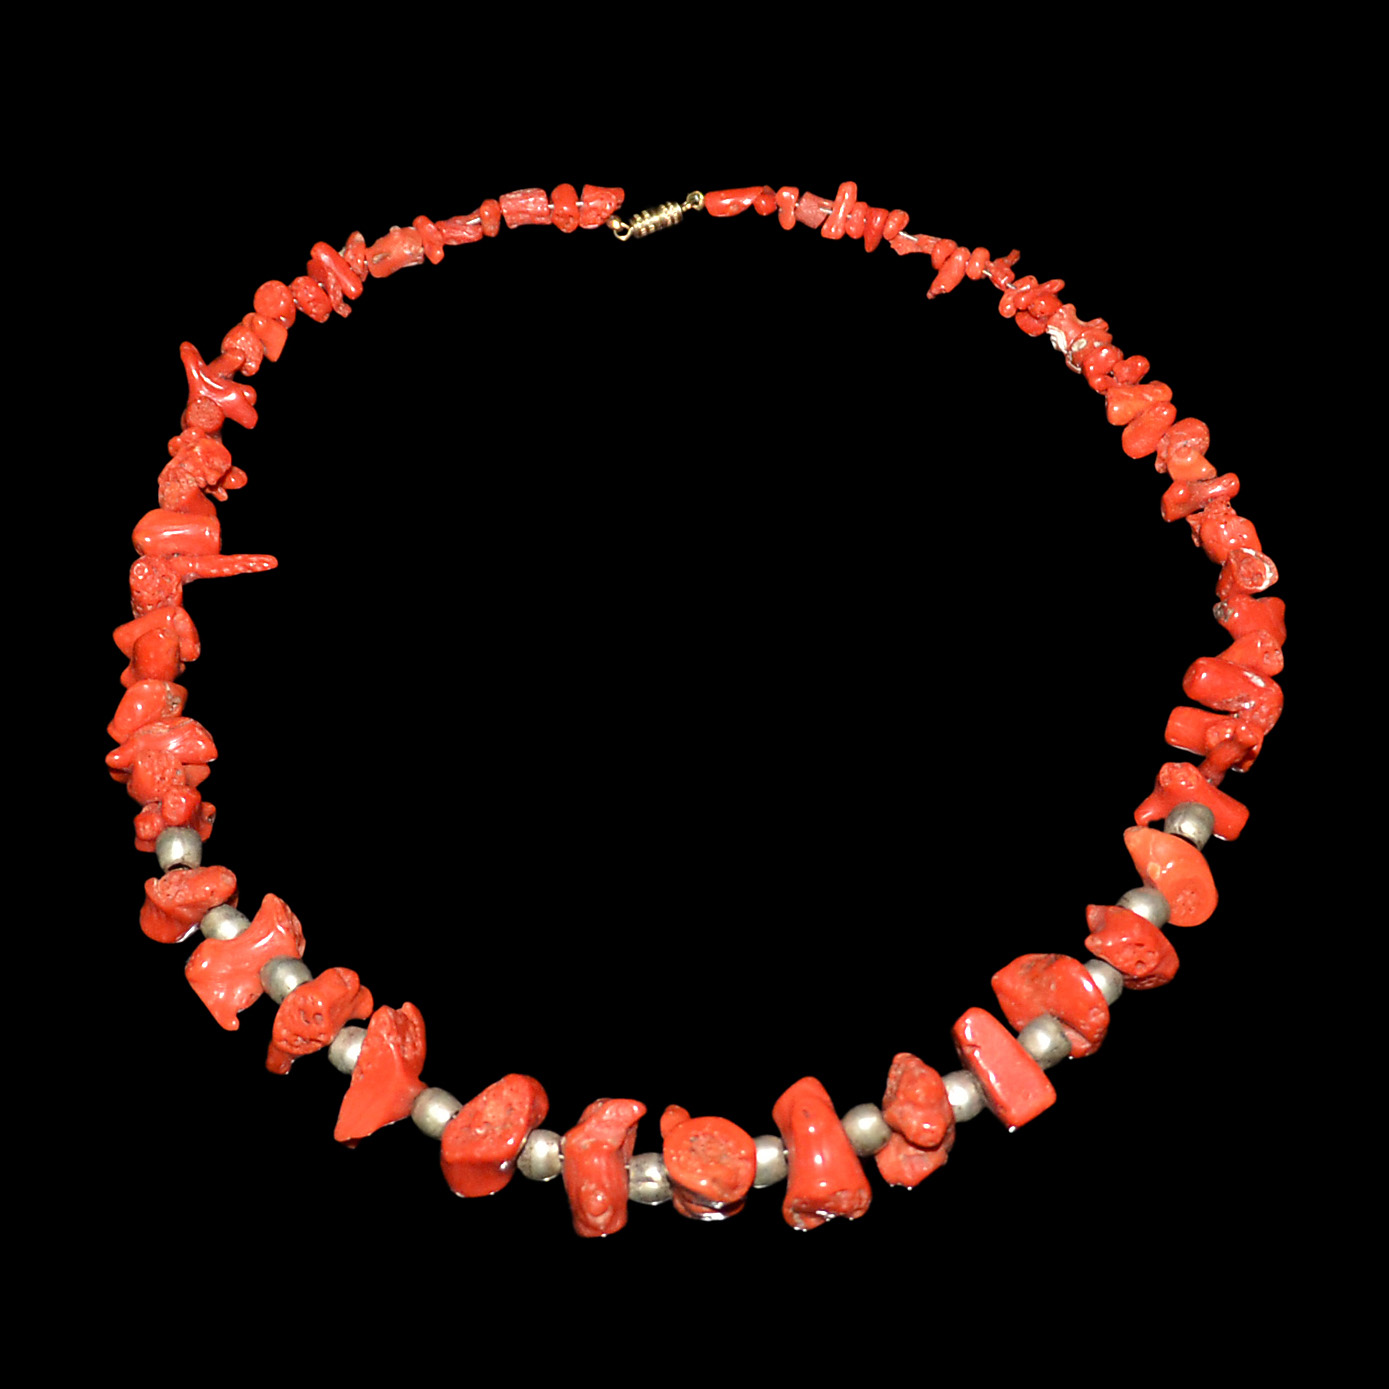 Lot 22 - 天然紅珊瑚珠銀花蕾項鏈掛飾 Coral Necklace with Naturalistic Beads and Silver Beads Diameter: 6¼ in (15.9 cm)